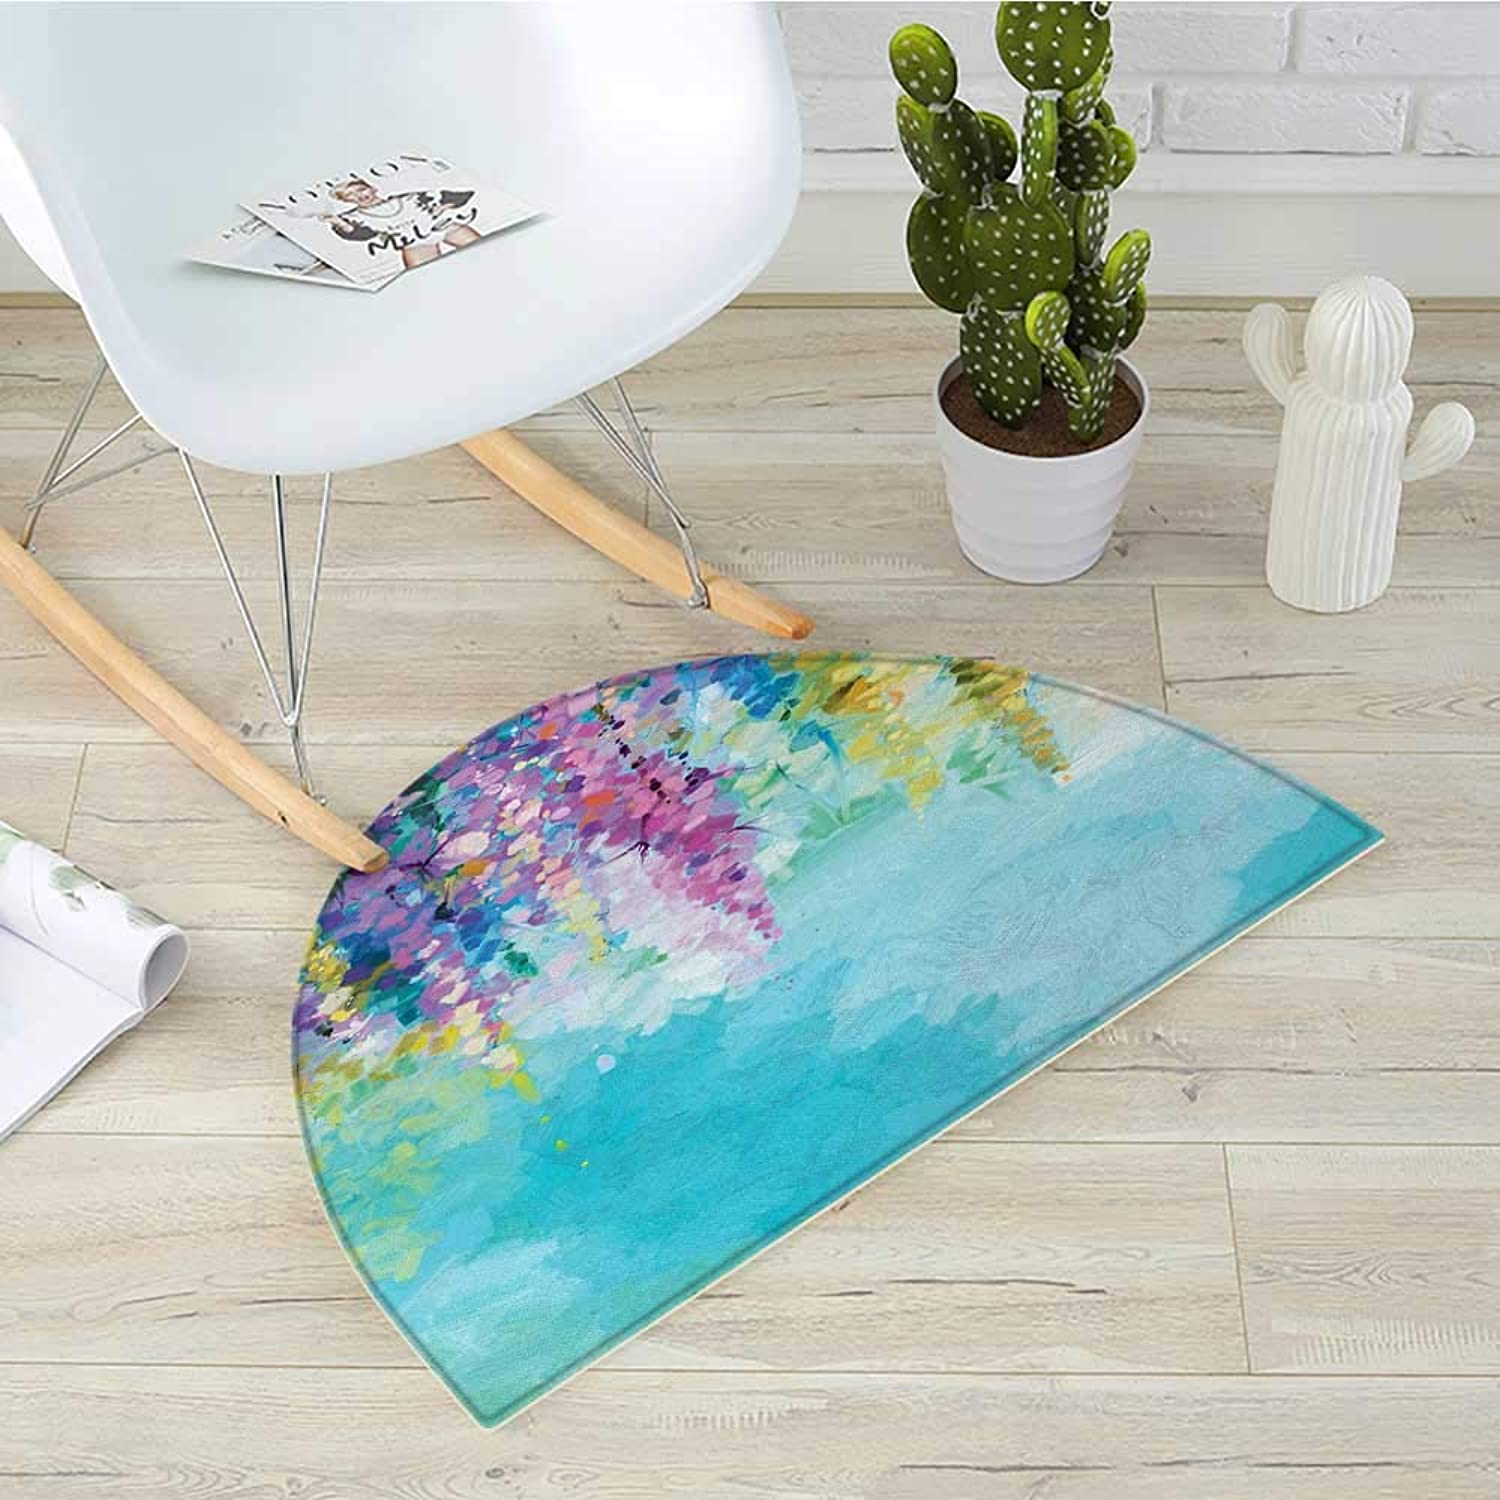 Flower Semicircular CushionAbstract Ivy Romantic and Inspiring Landscape Spring Floral Artwork Nature Theme Entry Door Mat H 27.5  xD 41.3  Multicolor